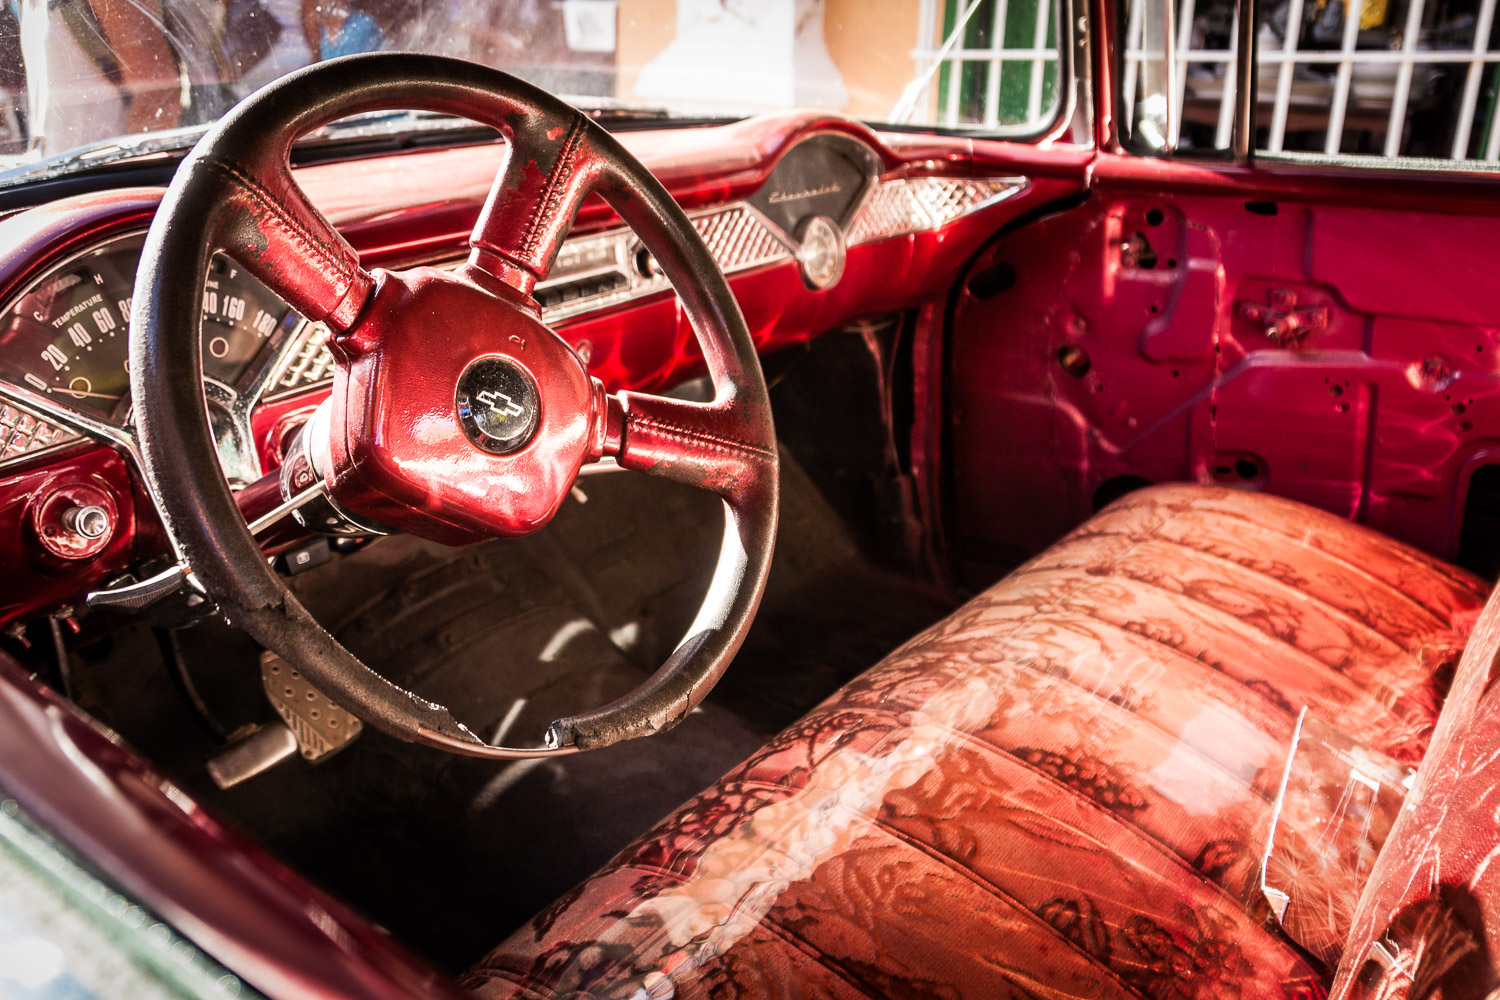 cuban cars-19-Edit.jpg